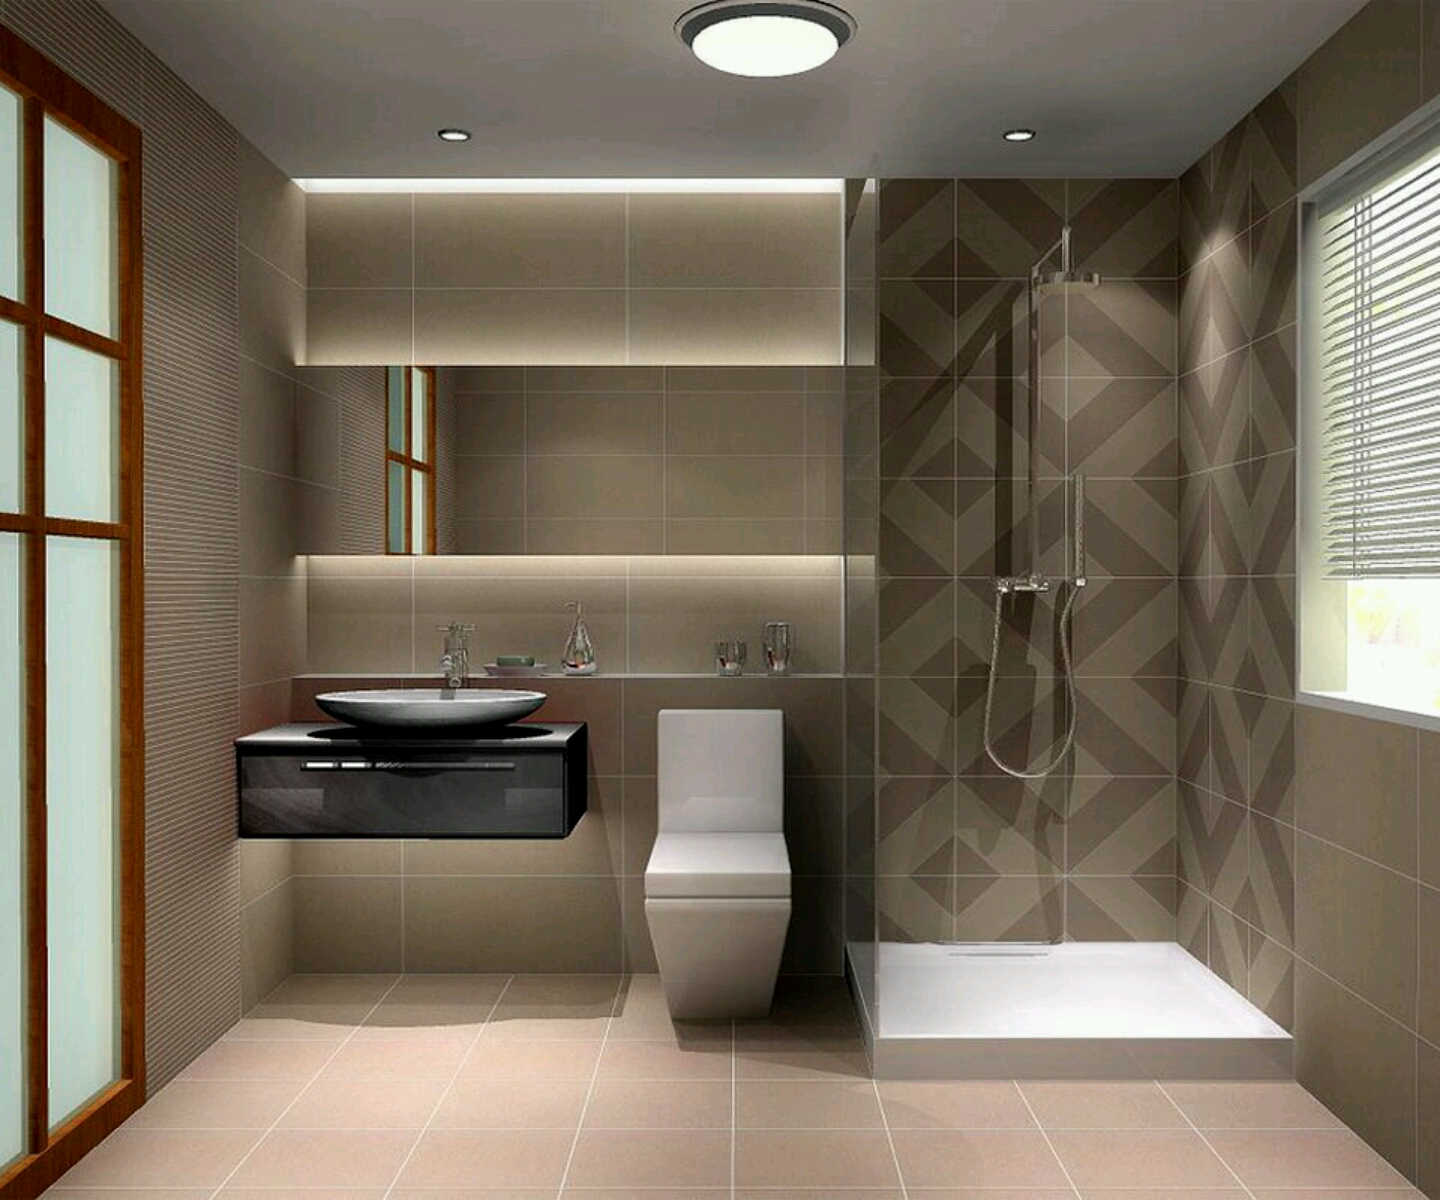 modern bathrooms designs pictures furniture gallery. Black Bedroom Furniture Sets. Home Design Ideas